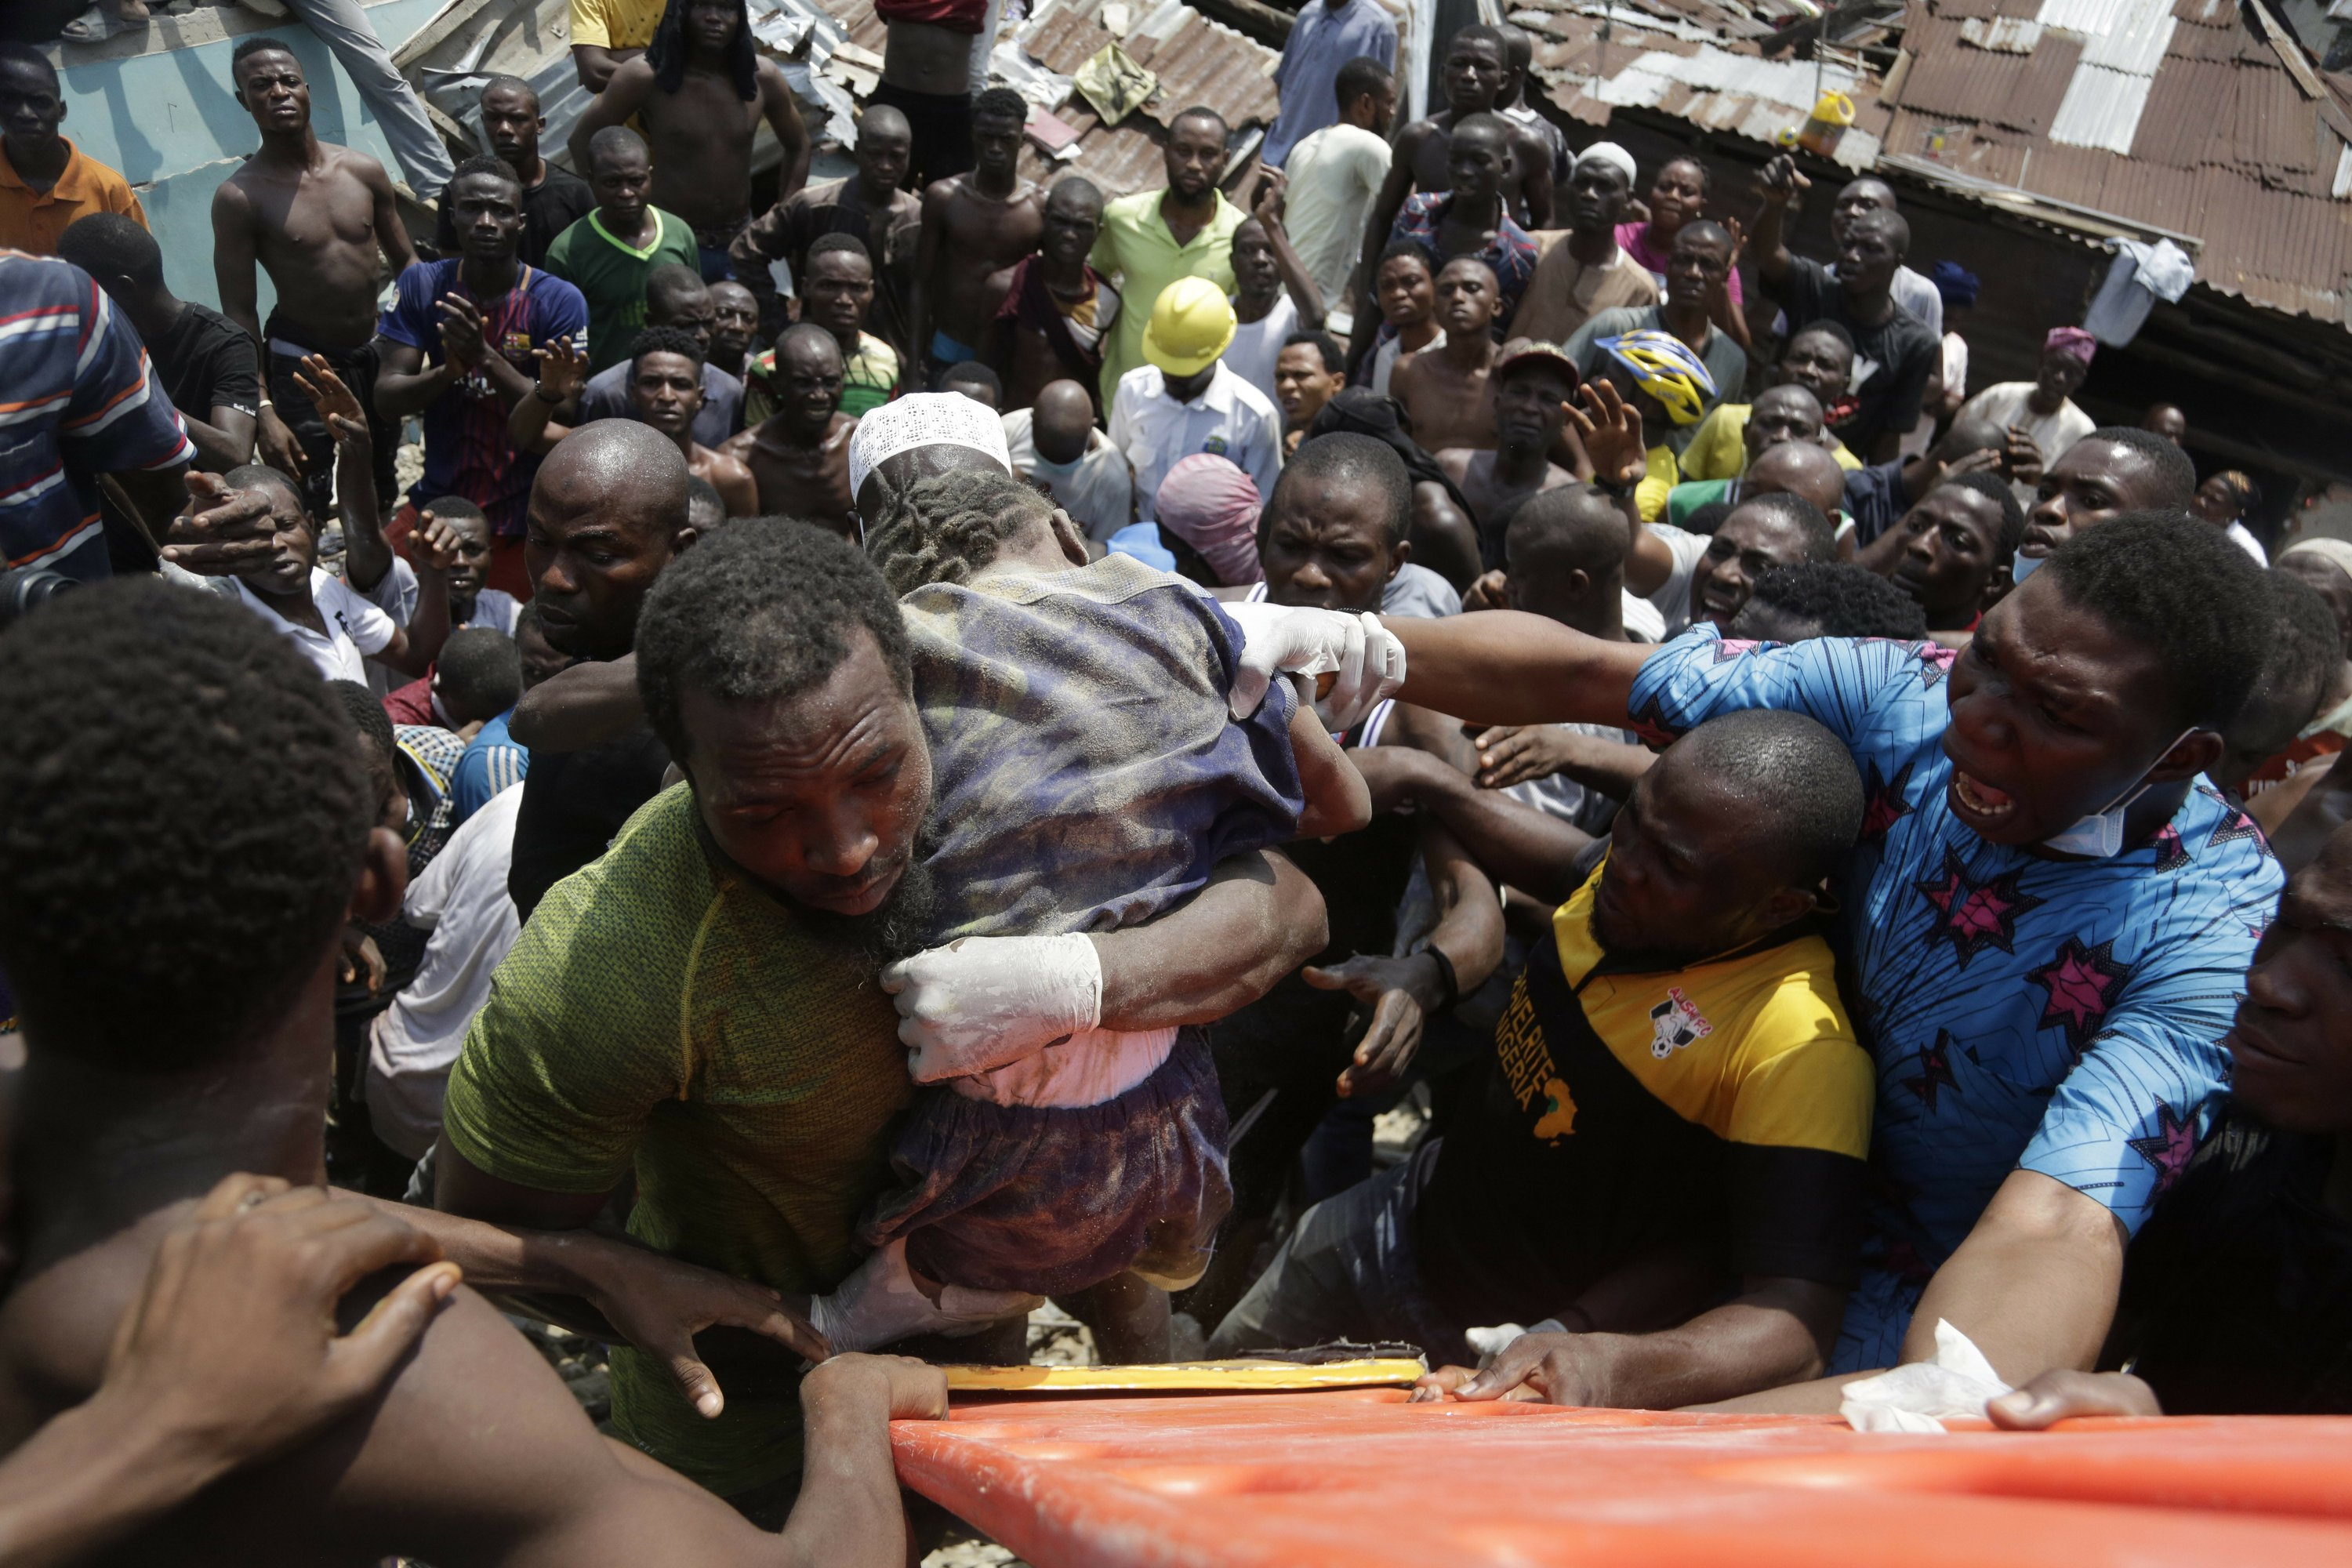 Dozens trapped in Nigeria school collapse, at least 8 dead - The Associated Press